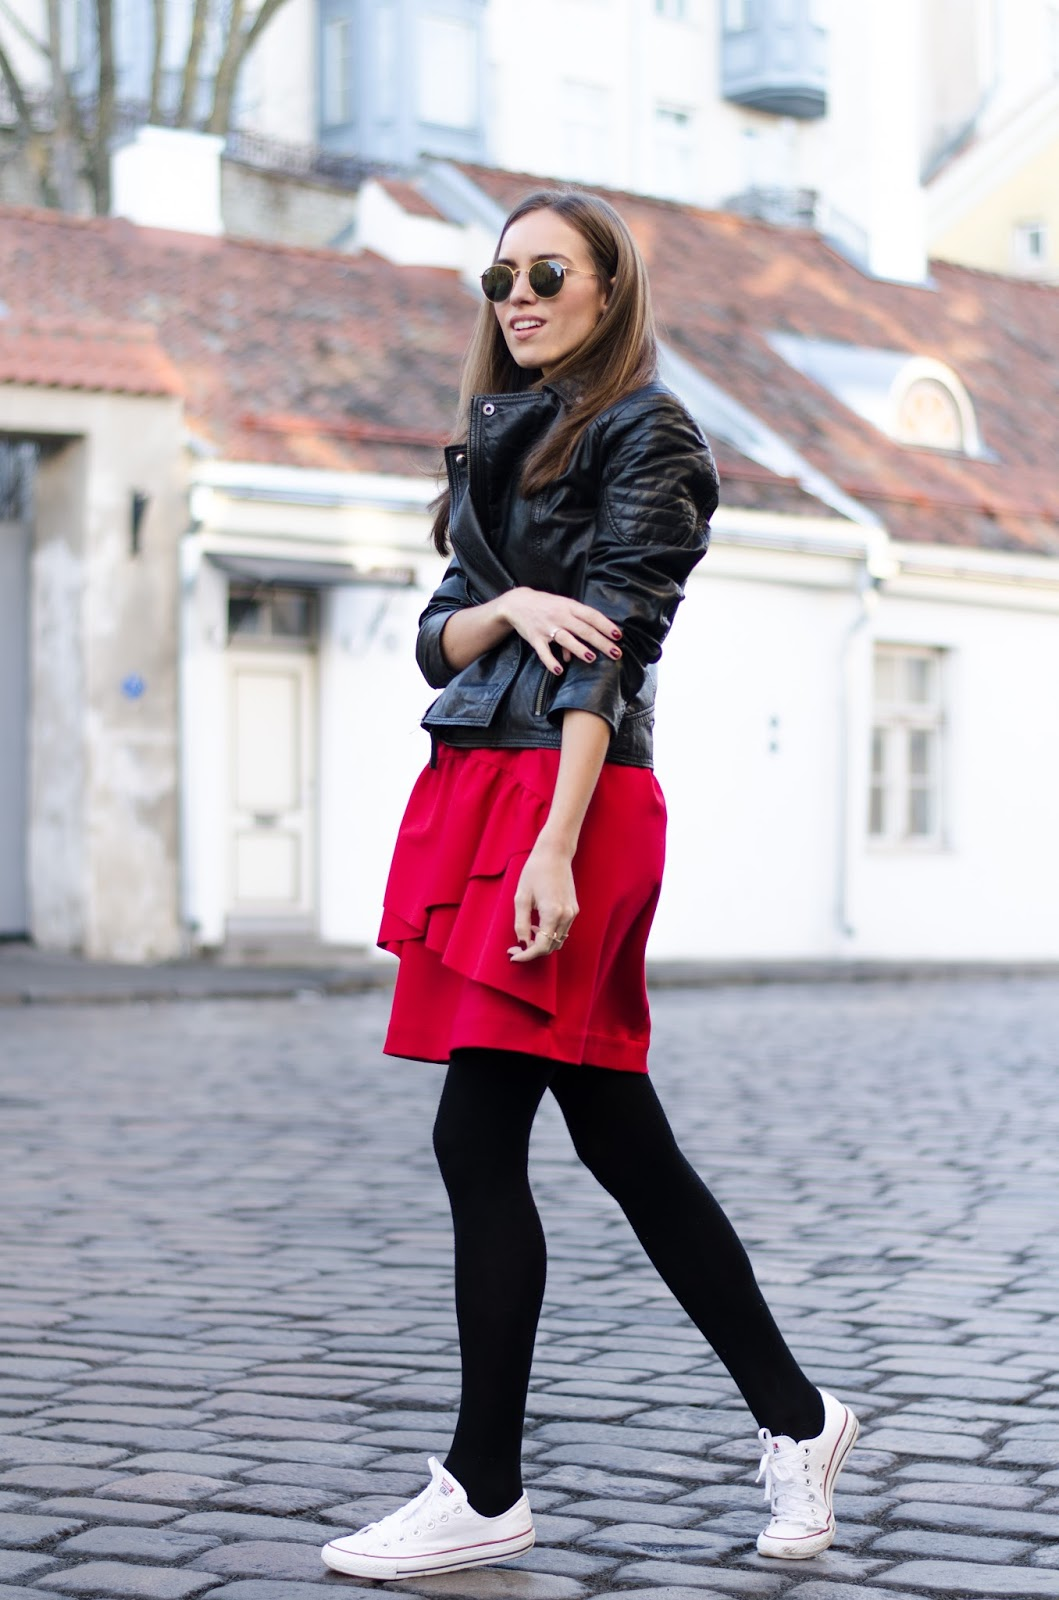 kristjaana mere leather jacket red skirt sneakers winter outfit